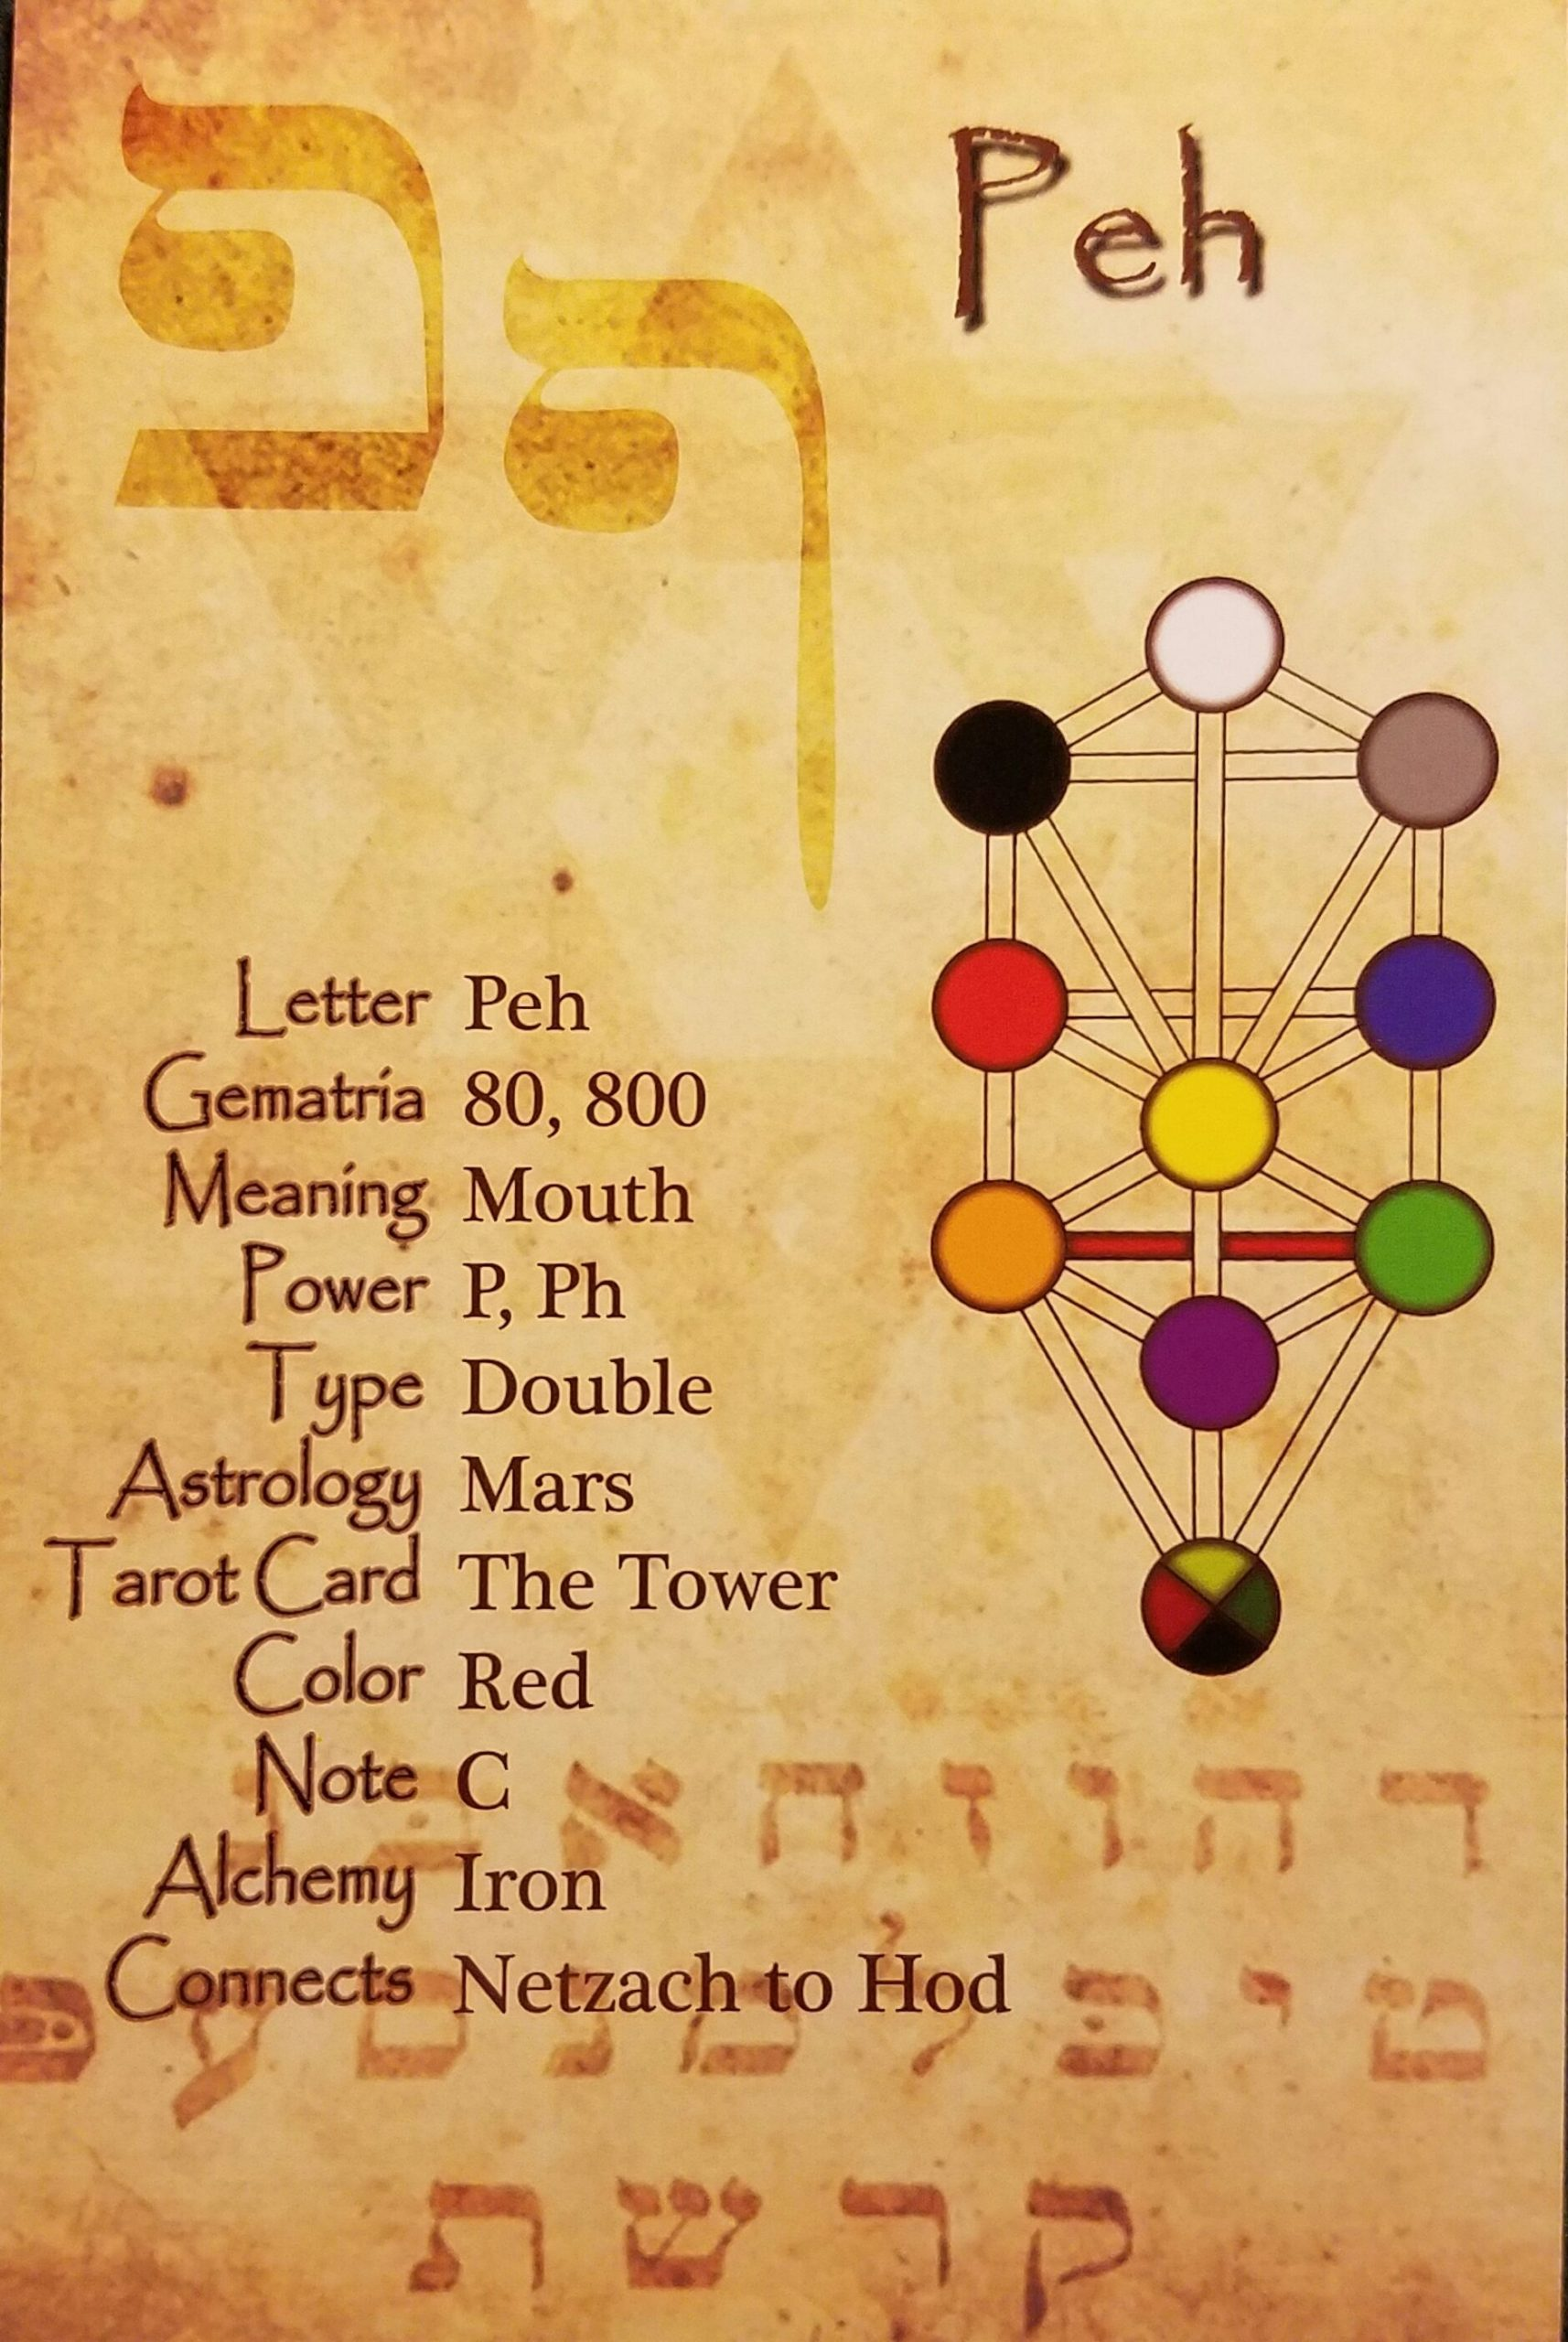 Get Hebrew Letters 12 Zodiac Signs Tarot